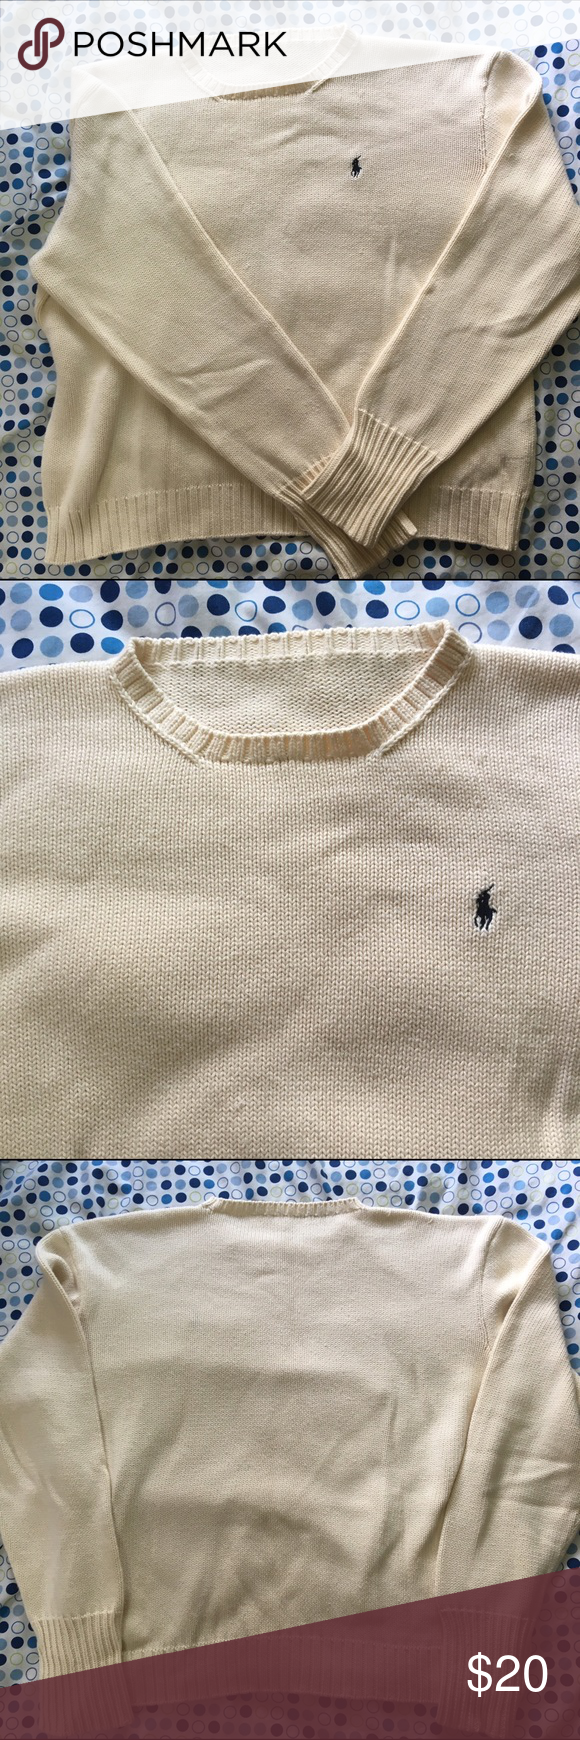 Cream Polo Knit Sweater This cream polo sweater is in good shape. No noticeable flaws. The tag has been cut out but it fits like a large. Polo by Ralph Lauren Sweaters Crew & Scoop Necks